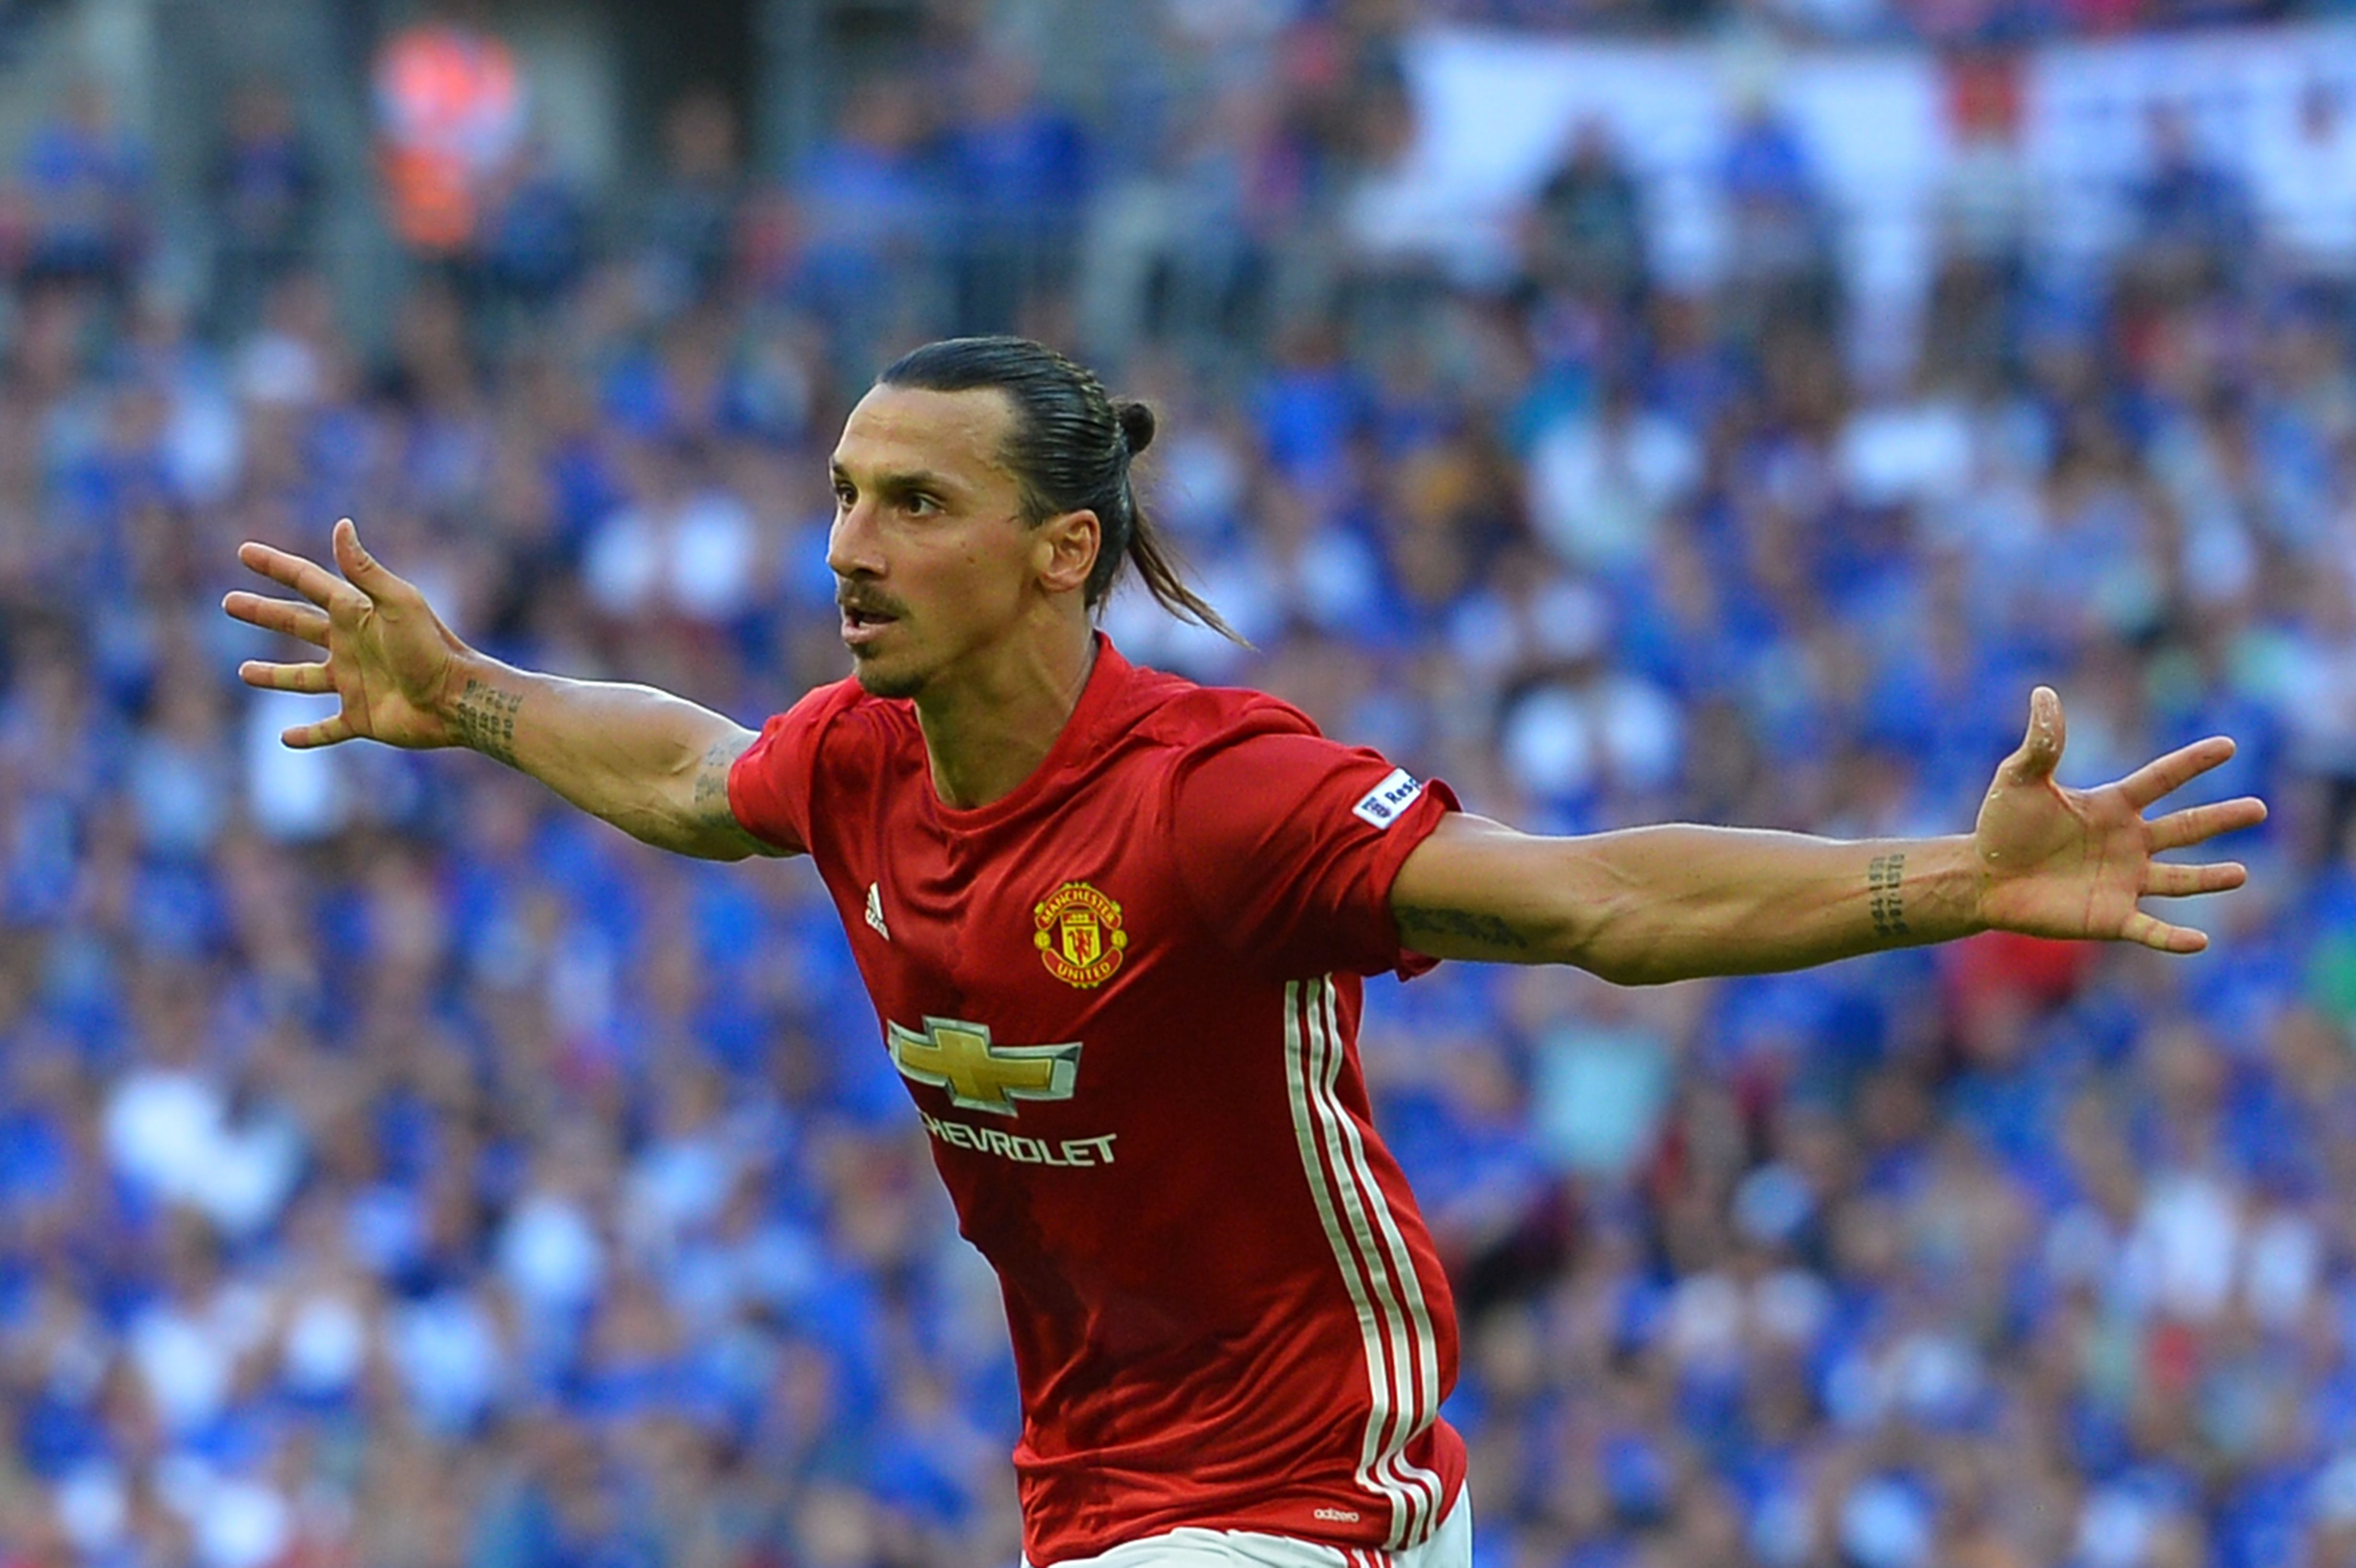 Manchester United's Swedish striker Zlatan Ibrahimovic celebrates scoring their second goal during the FA Community Shield football match between Manchester United and Leicester City at Wembley Stadium in London on August 7, 2016. / AFP PHOTO / GLYN KIRK / NOT FOR MARKETING OR ADVERTISING USE / RESTRICTED TO EDITORIAL USE